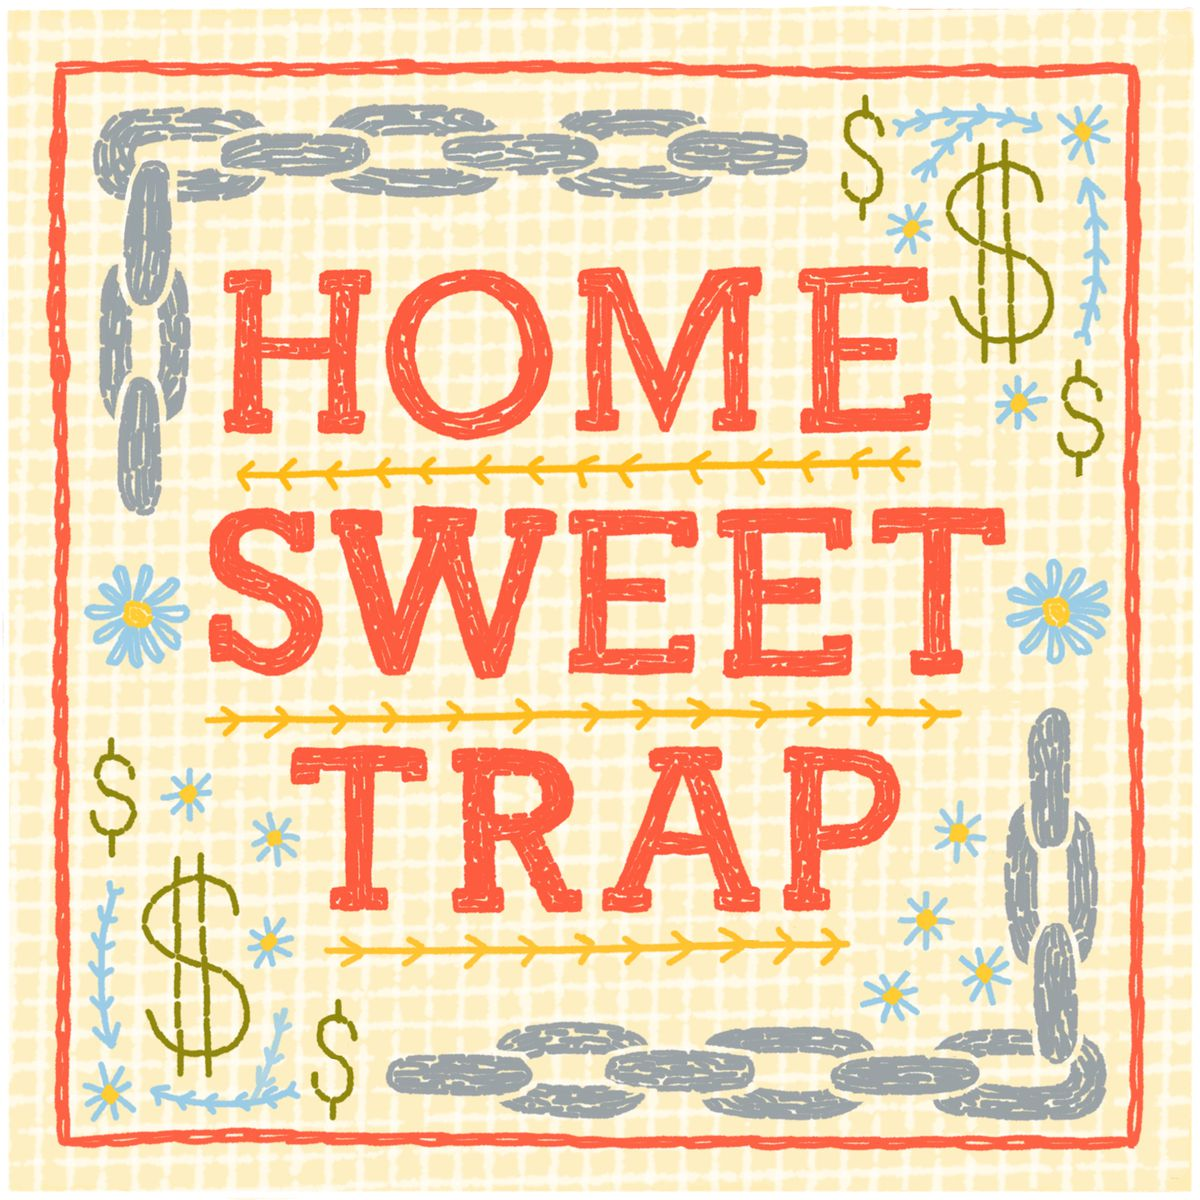 """A handmade looking cross stitch design that reads """"Home Sweet Trap"""". Decorative elements of chains and dollar signs form a border around the lettering. Illustration."""